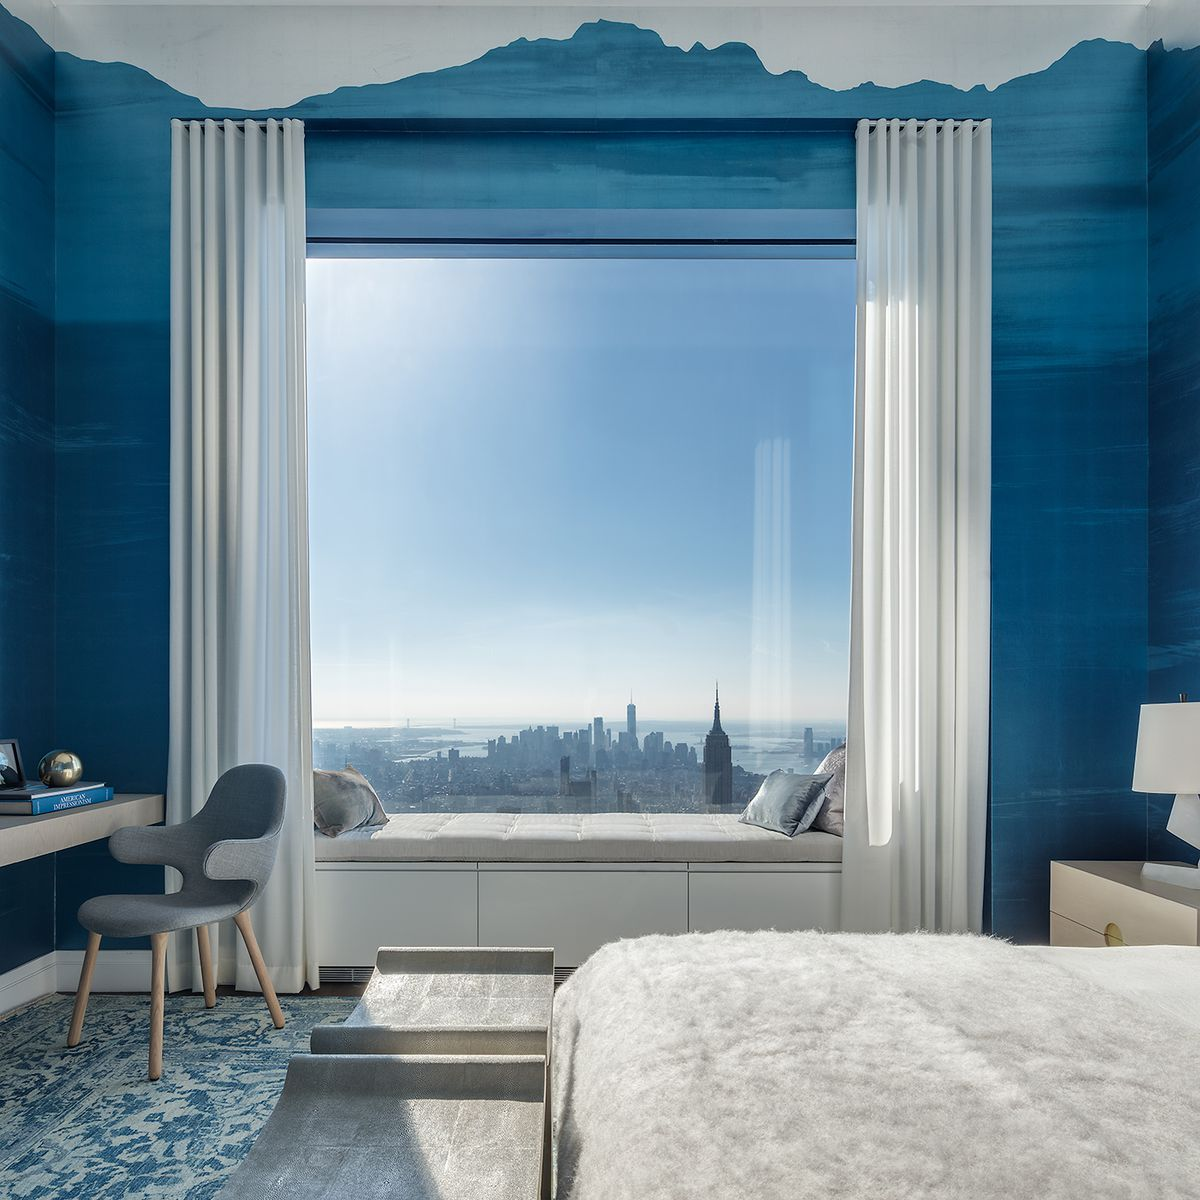 Apartments In Manhatten: Peek Inside 432 Park Avenue's $40M, 92nd-floor Penthouse